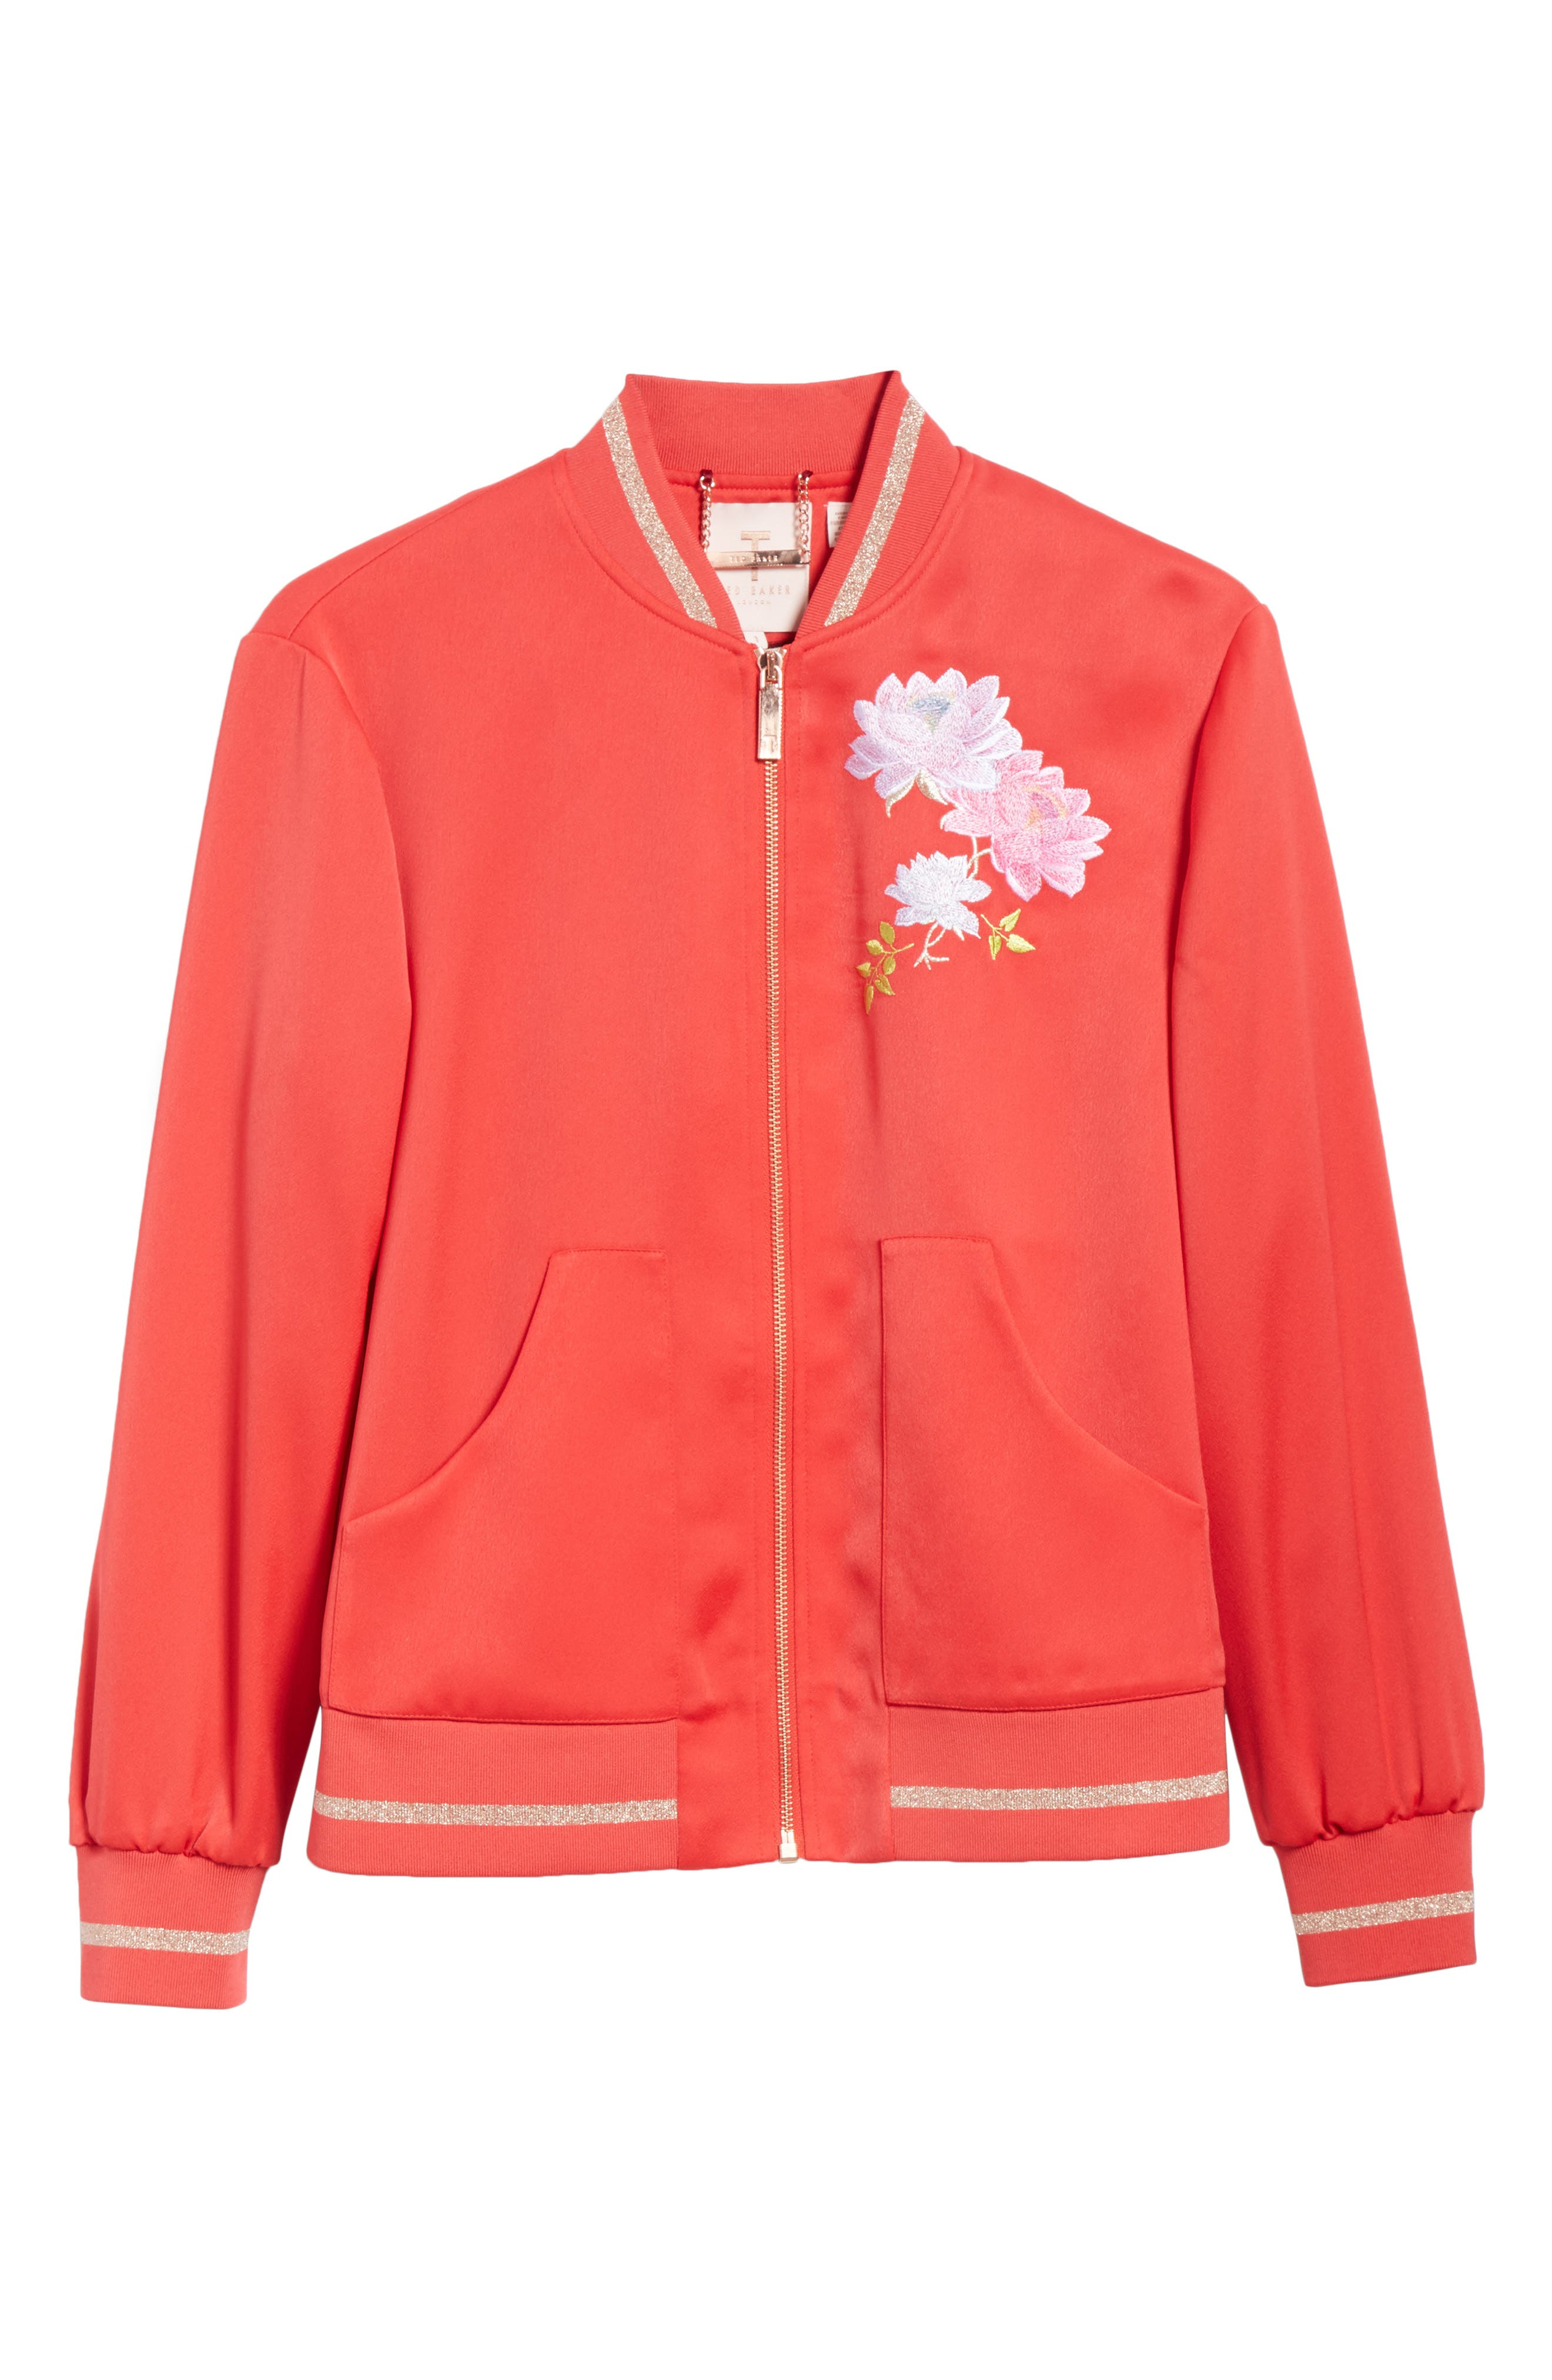 Ruuthe Chinoiserie Embroidery Jacket,                             Alternate thumbnail 6, color,                             Bright Red